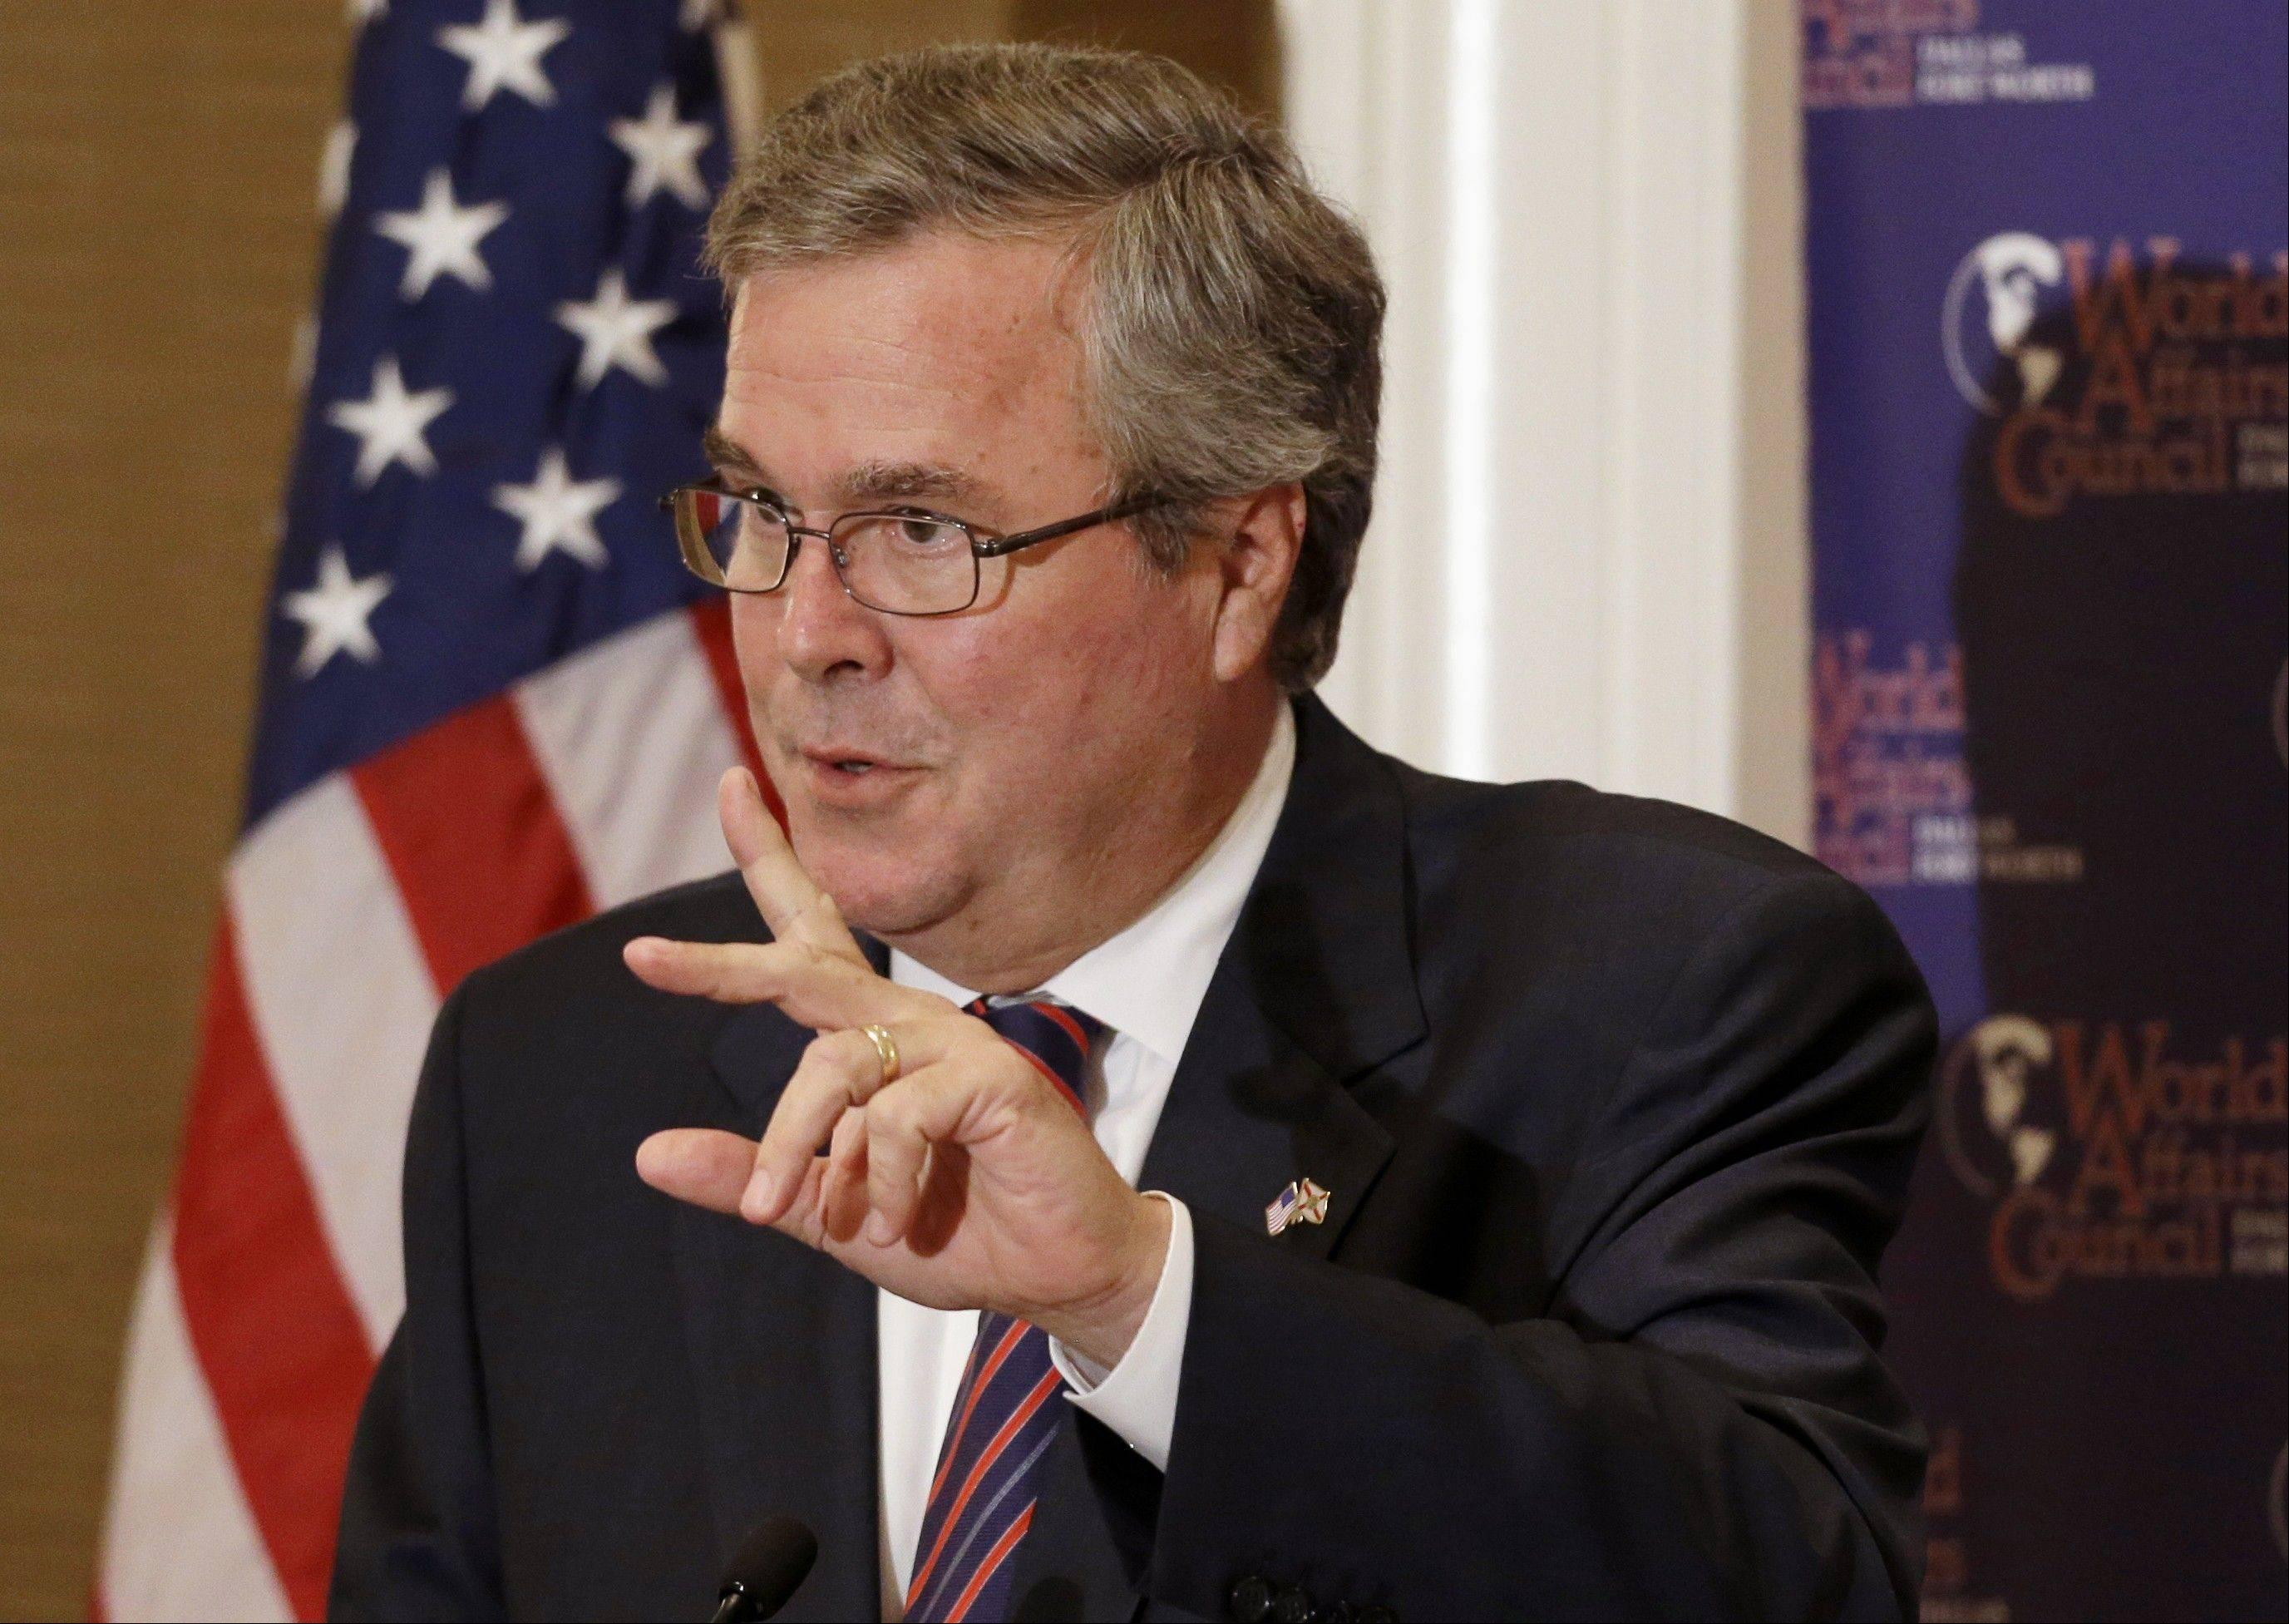 Ex-Florida Gov. Jeb Bush